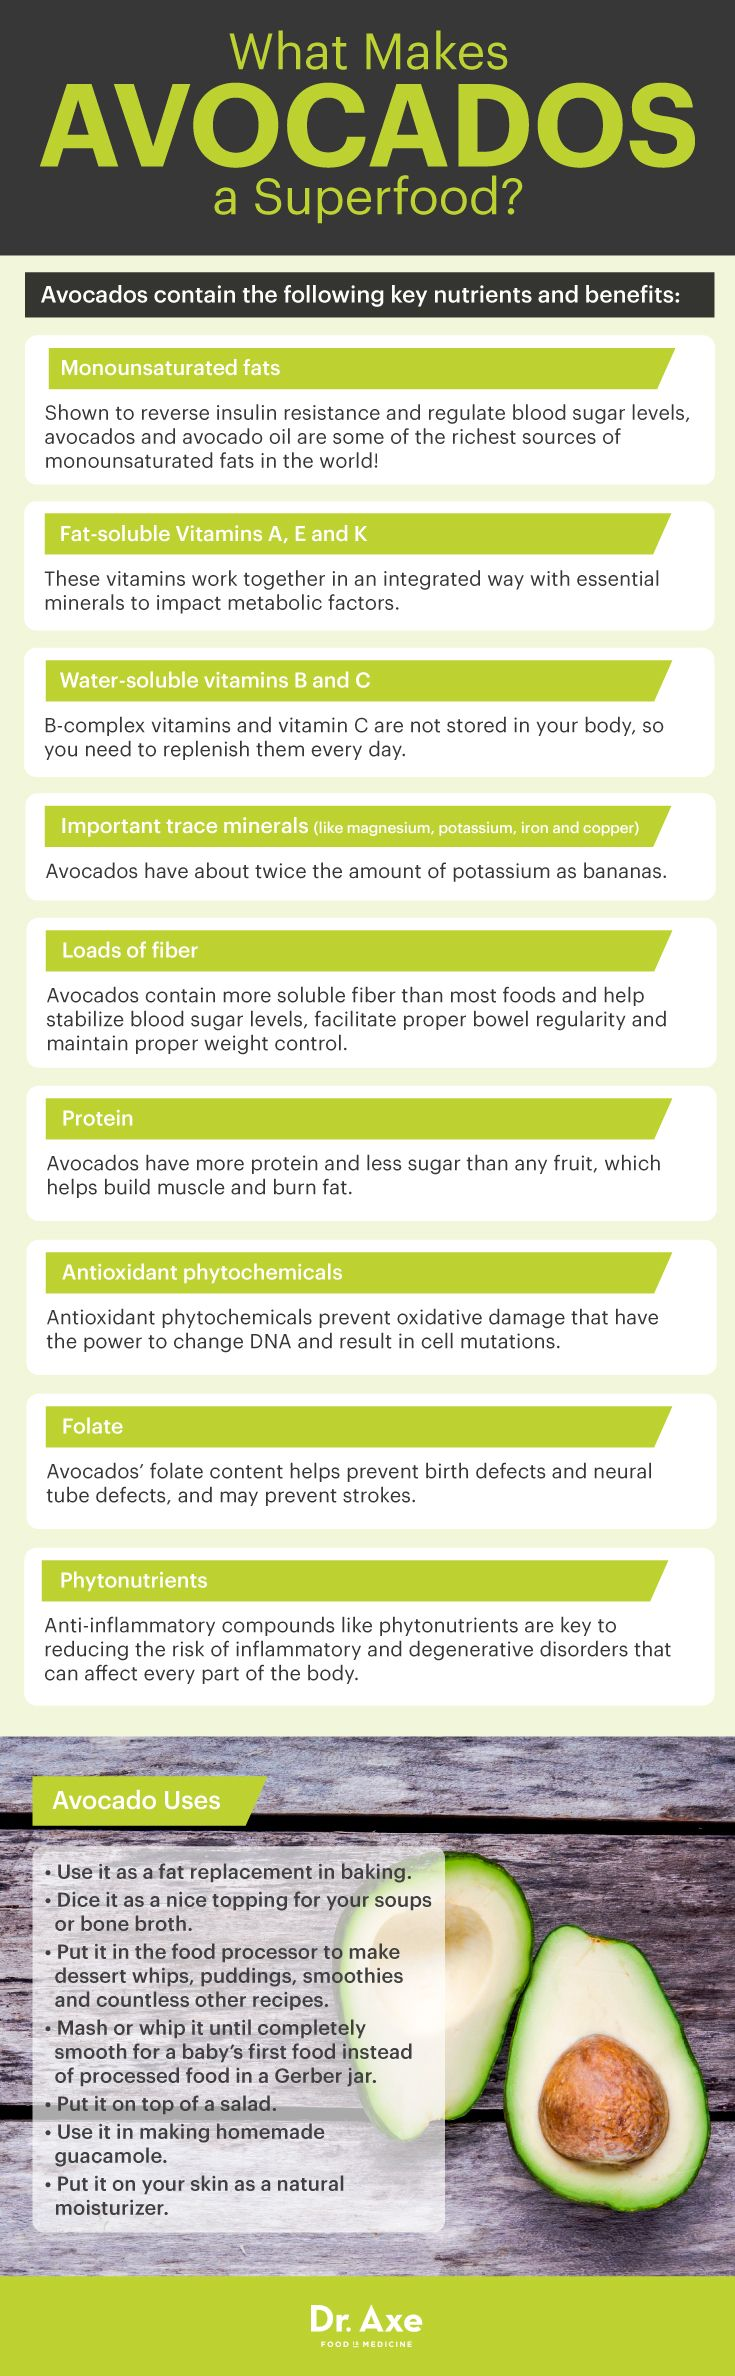 Avocado Benefits: the Planet's Most Nutrition-Packed Food? - Dr. Axe